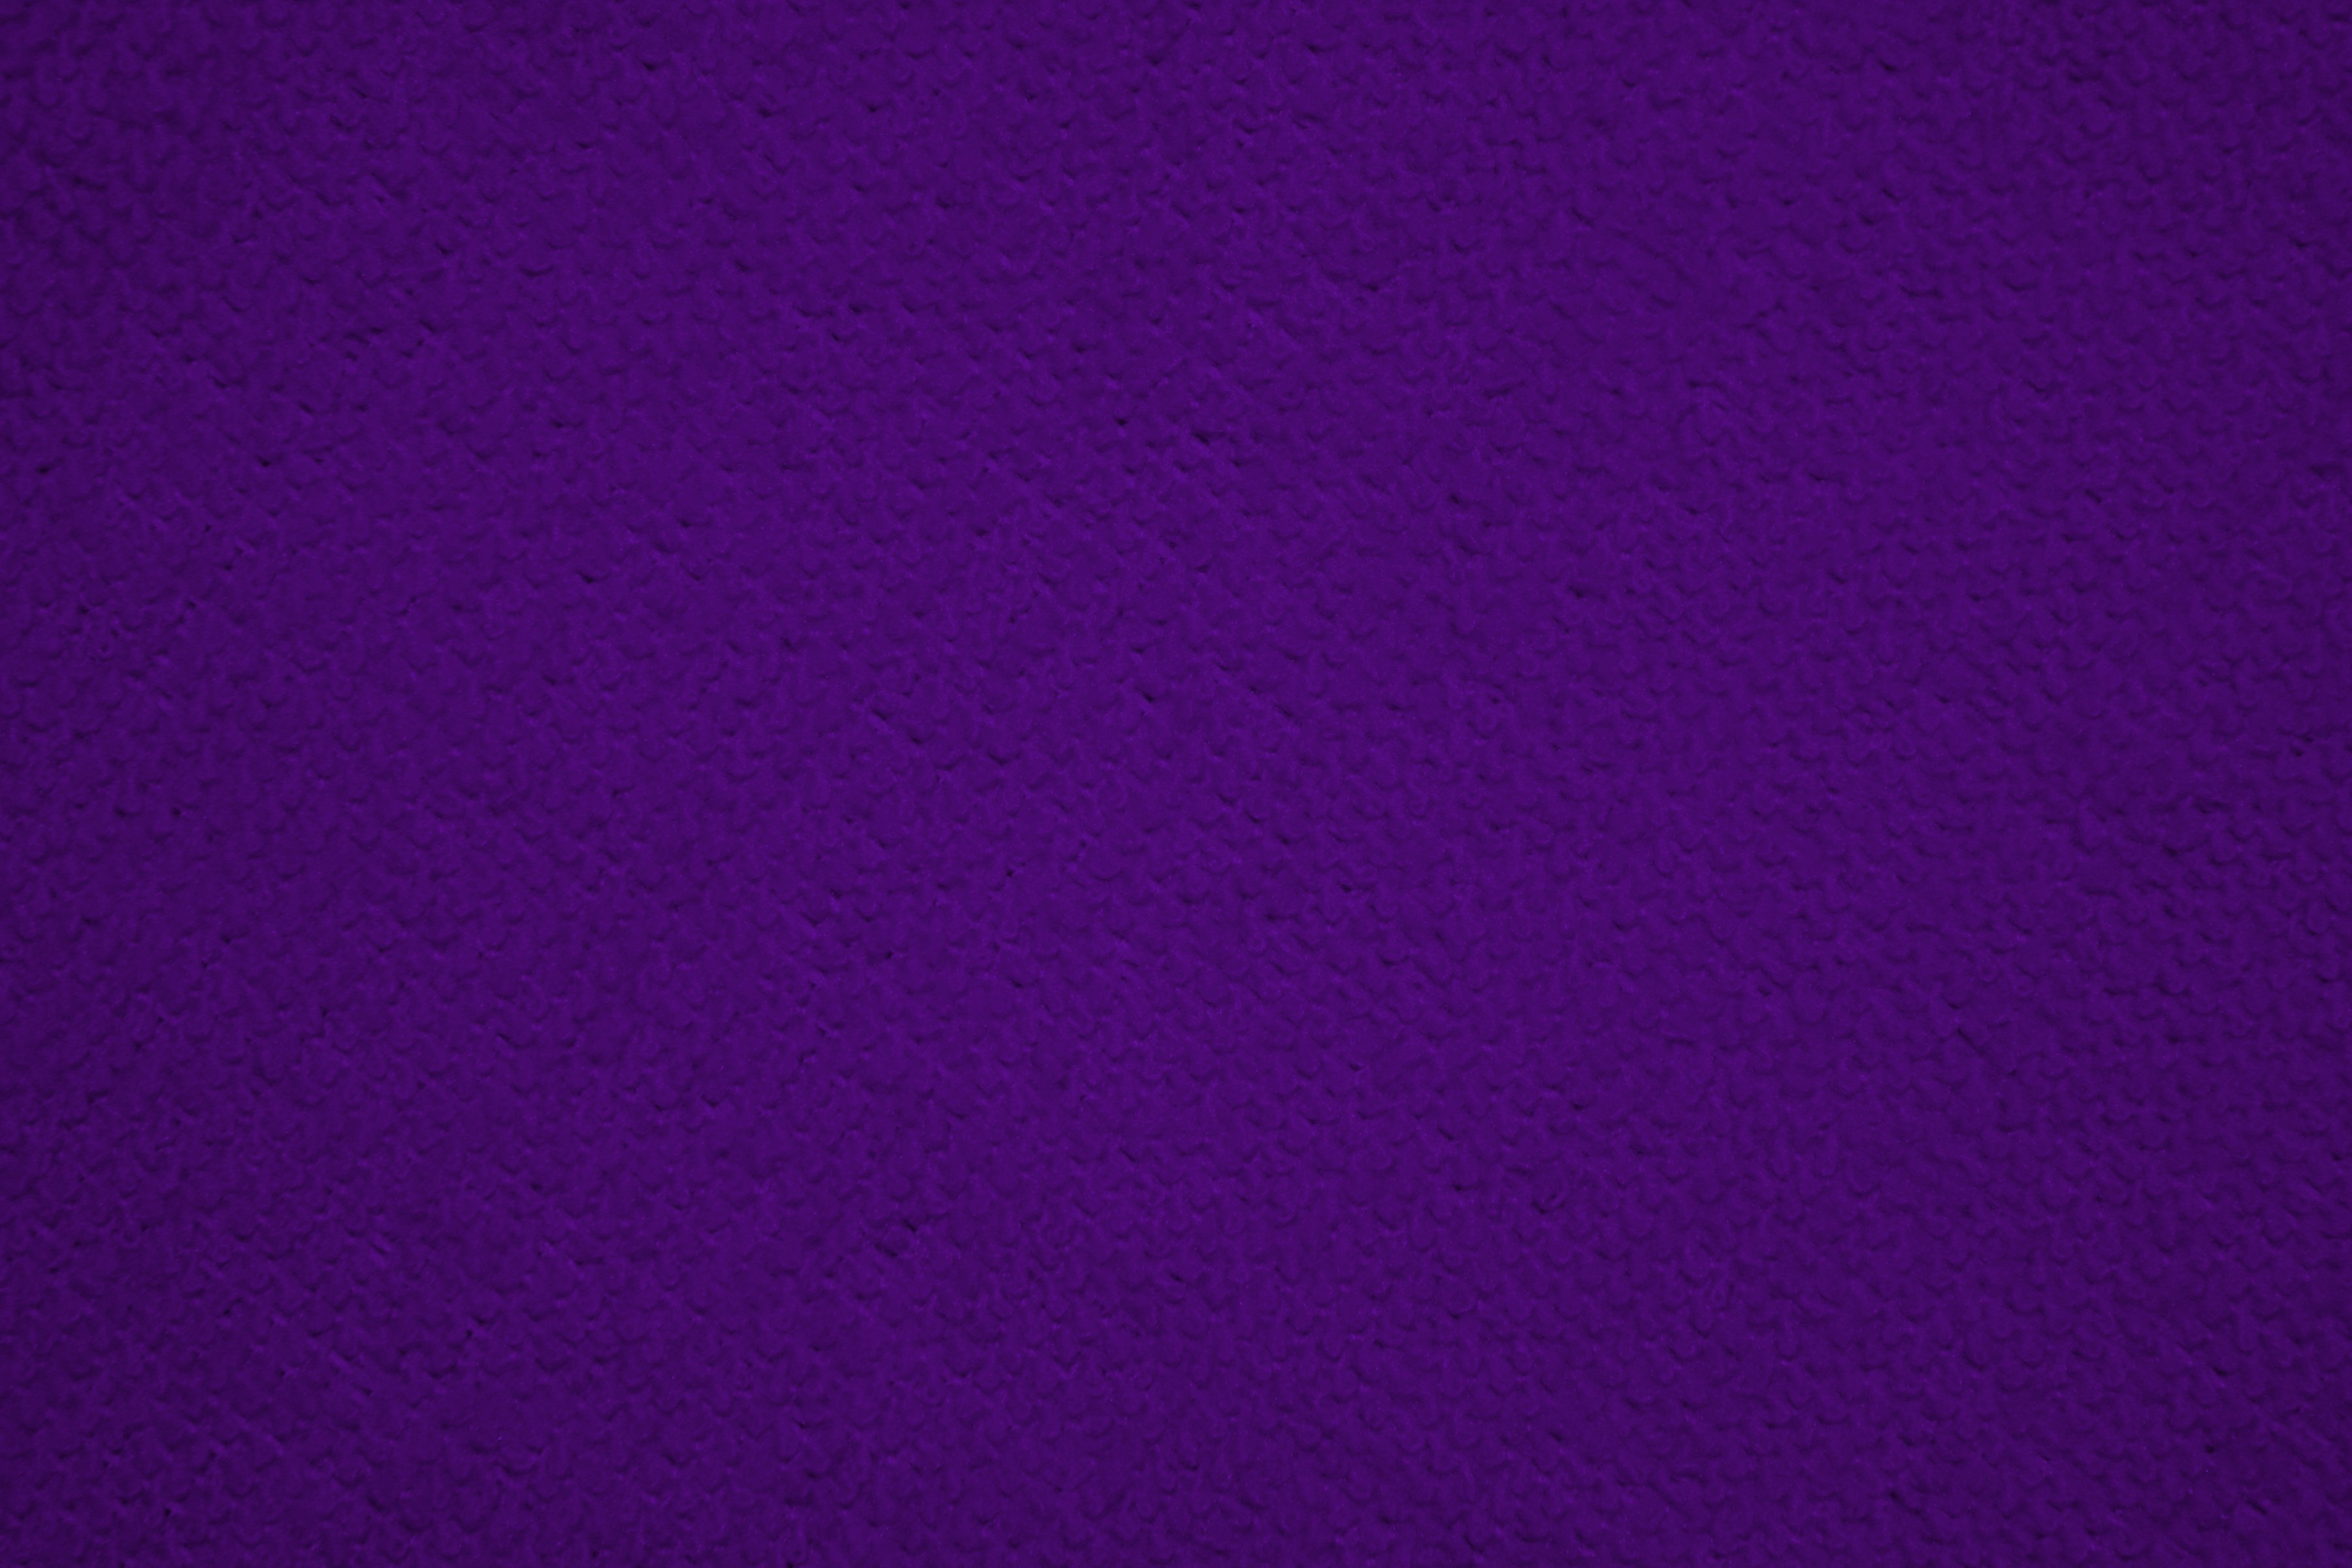 Deep Purple Microfiber Cloth Fabric Texture Picture Free